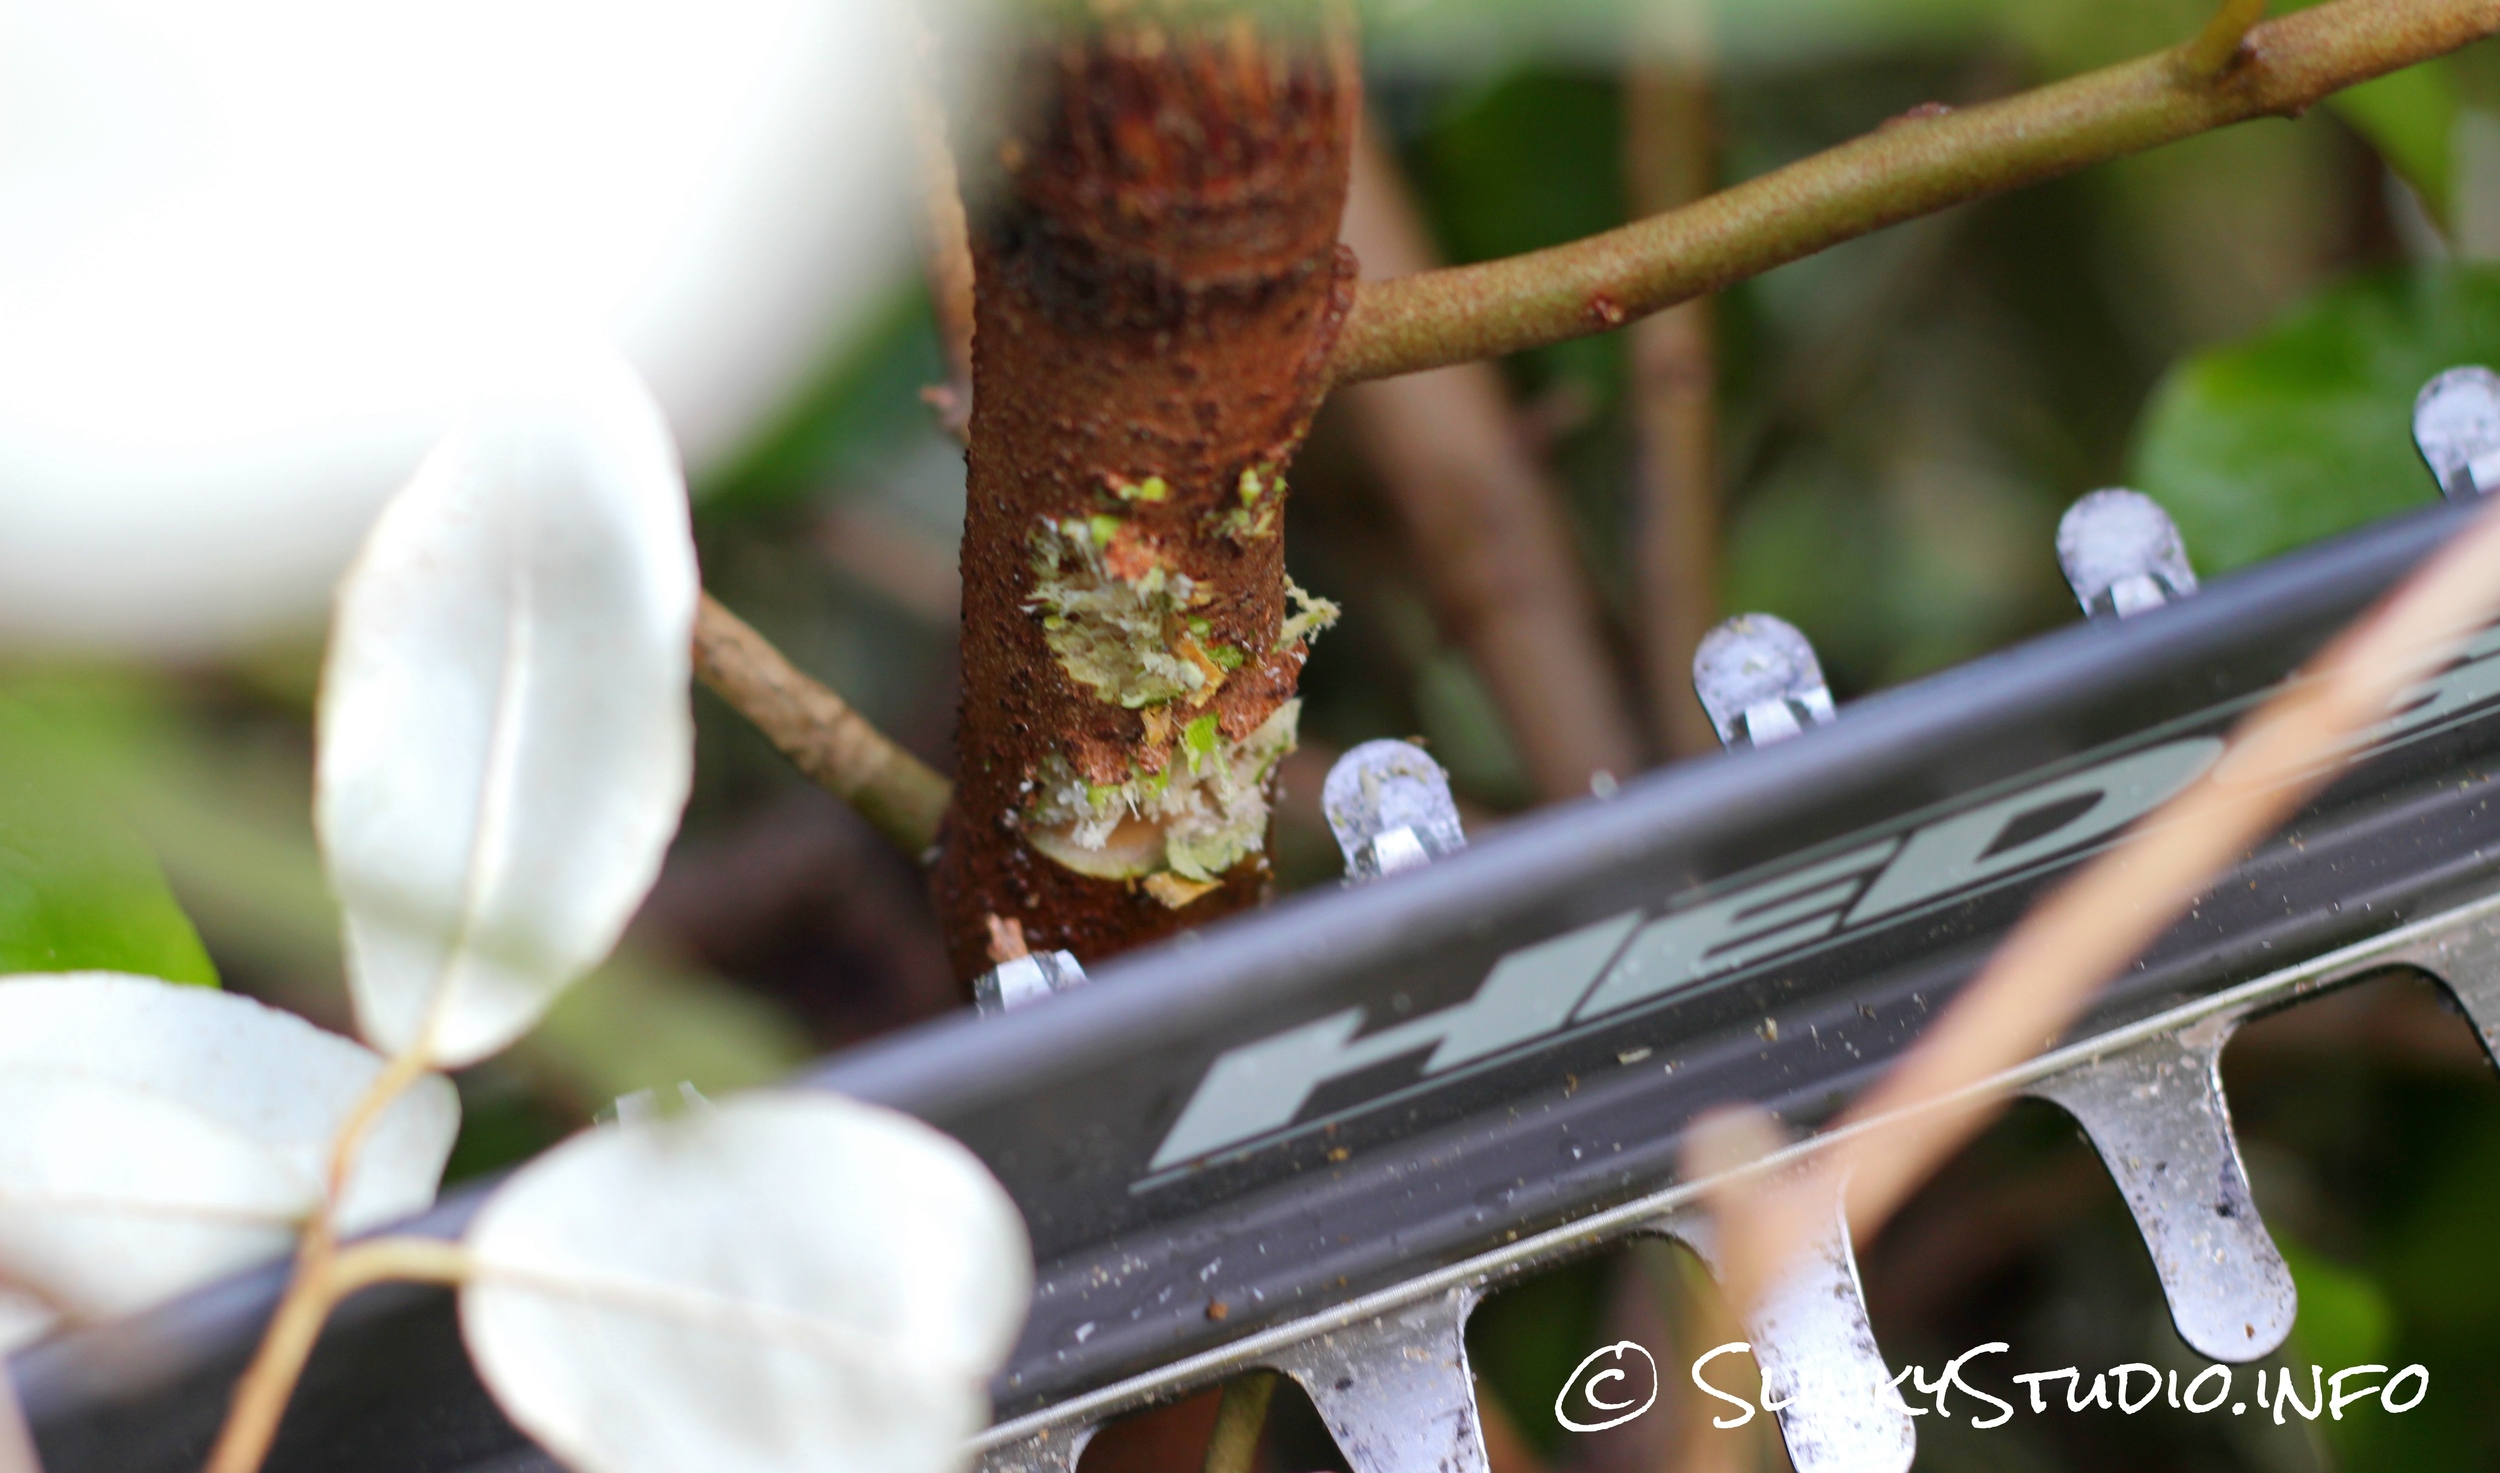 Ryobi One+ Hedge Trimmer Sawing Thick Branch.jpg